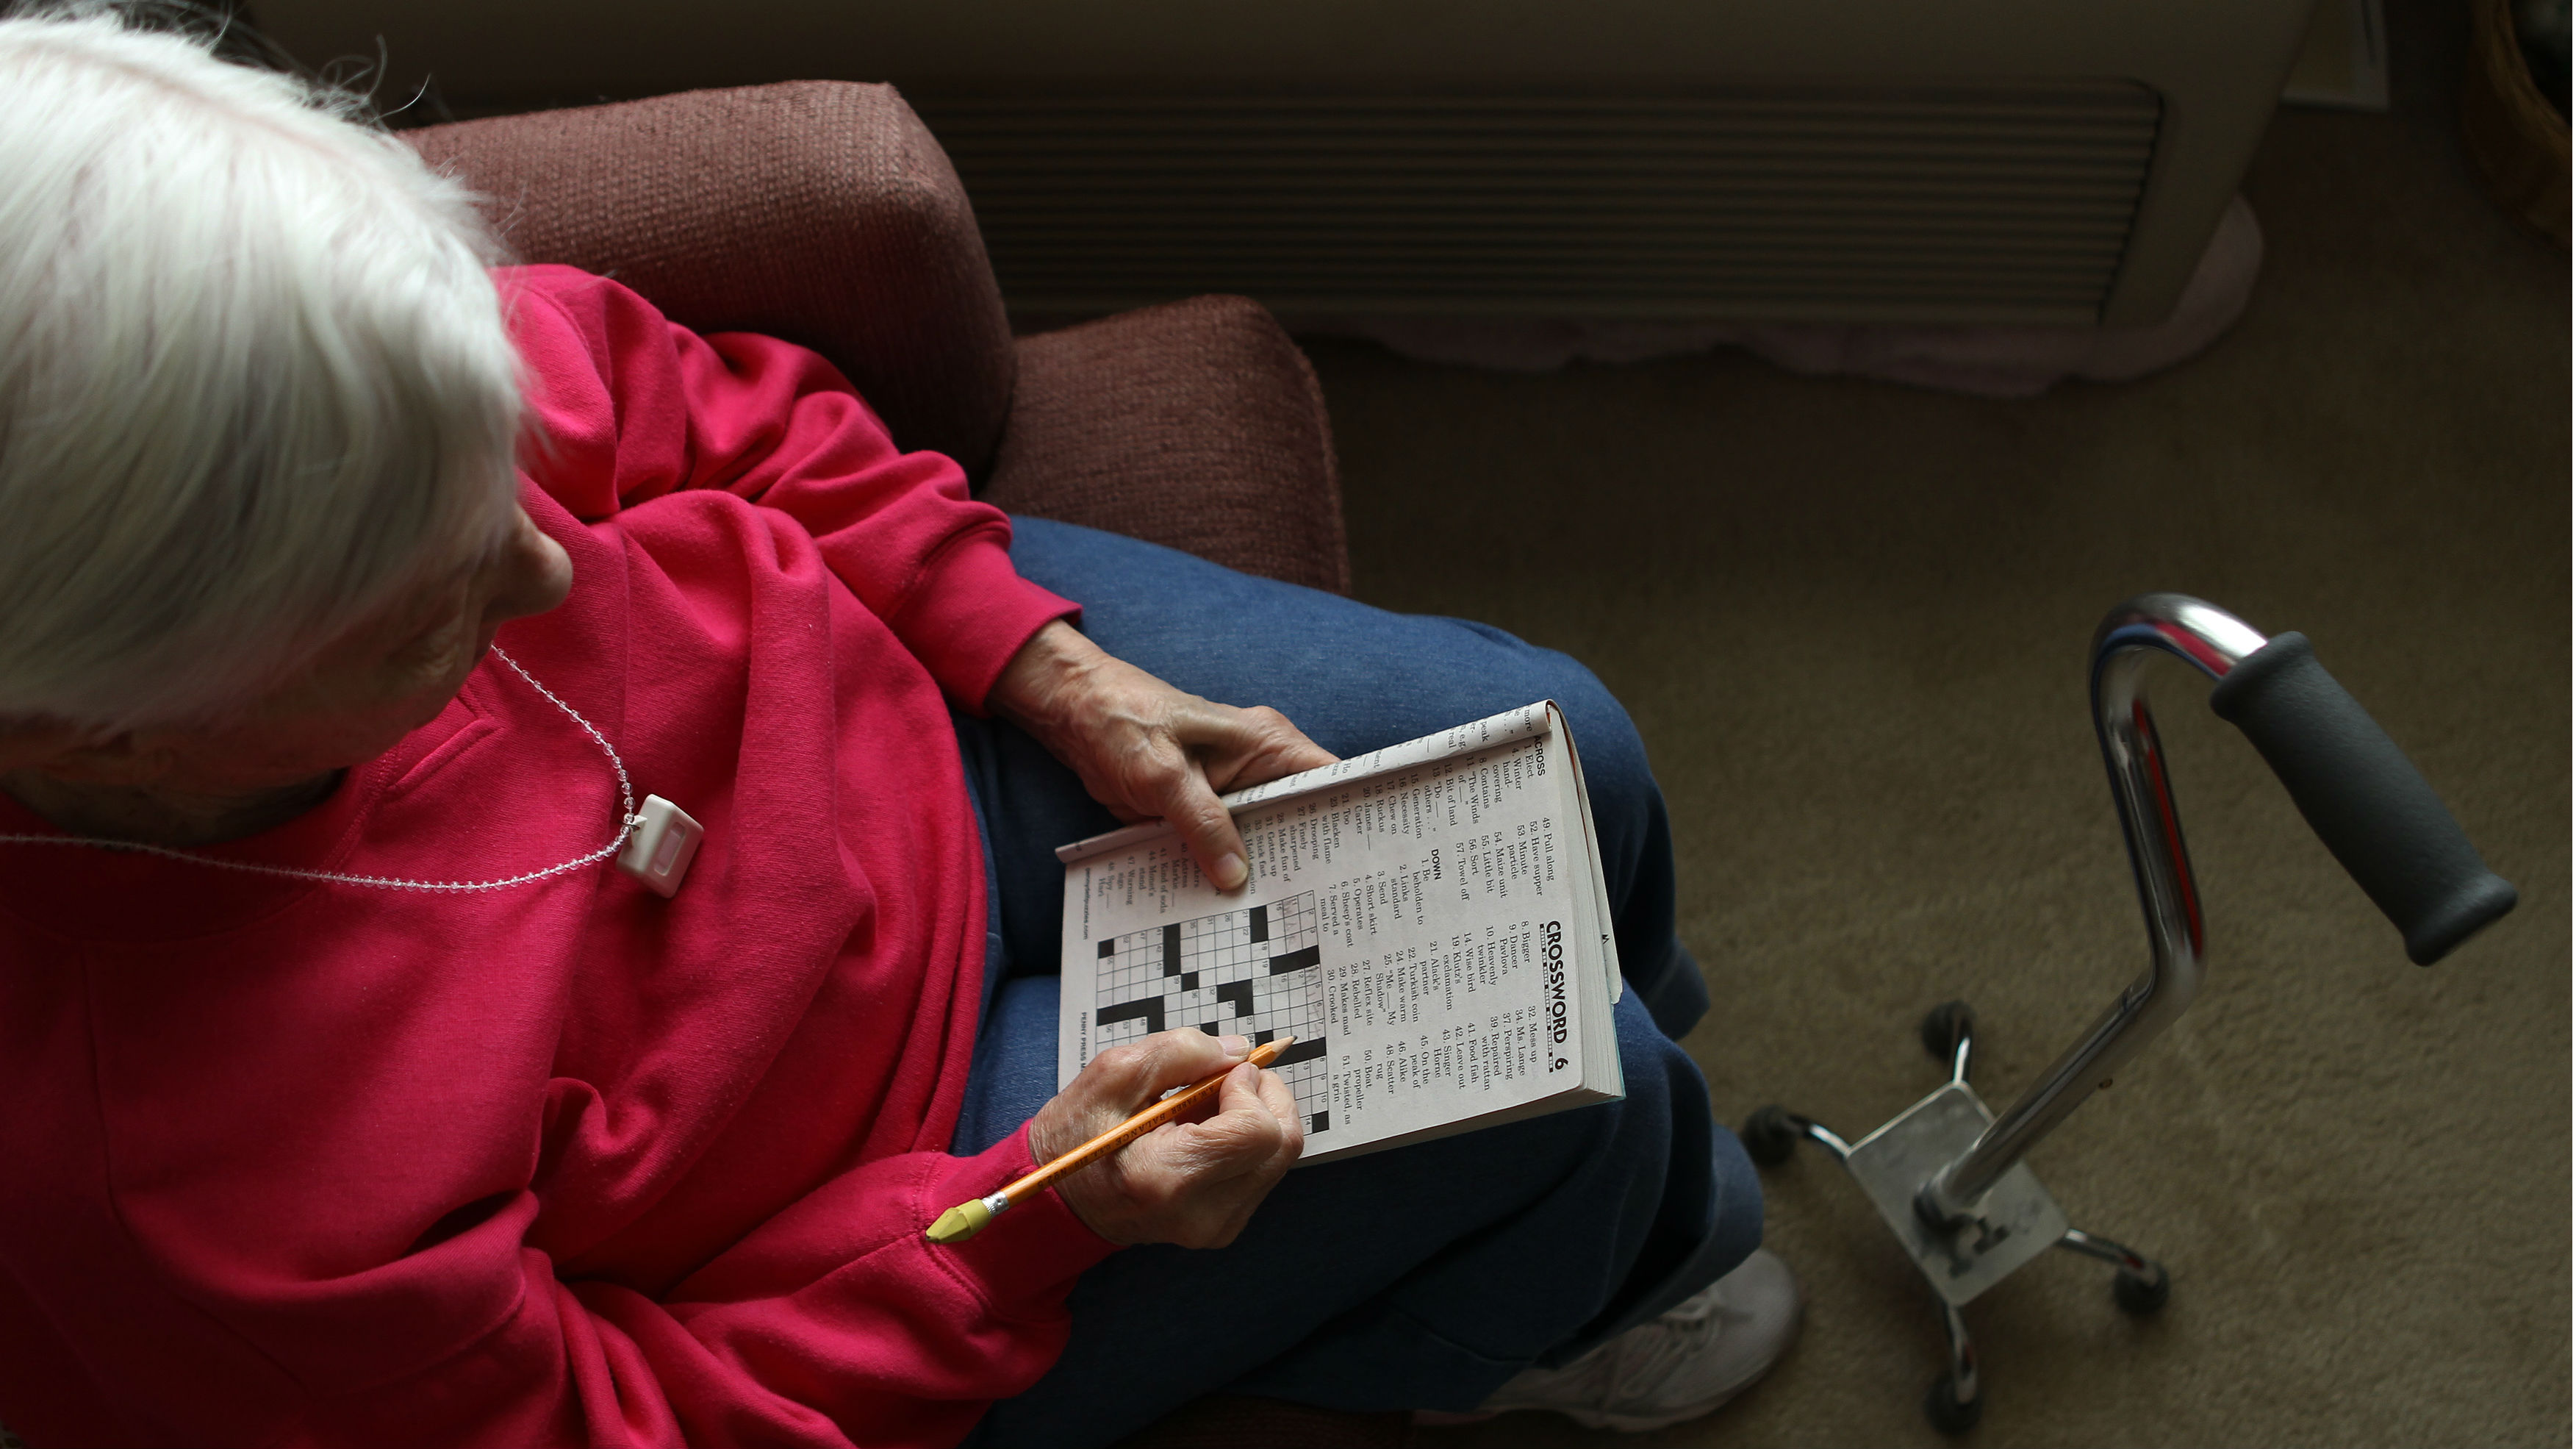 Inez Willis, a senior citizen, does a crossword puzzle at her independent living apartment in Silver Spring, Maryland April 11, 2012.